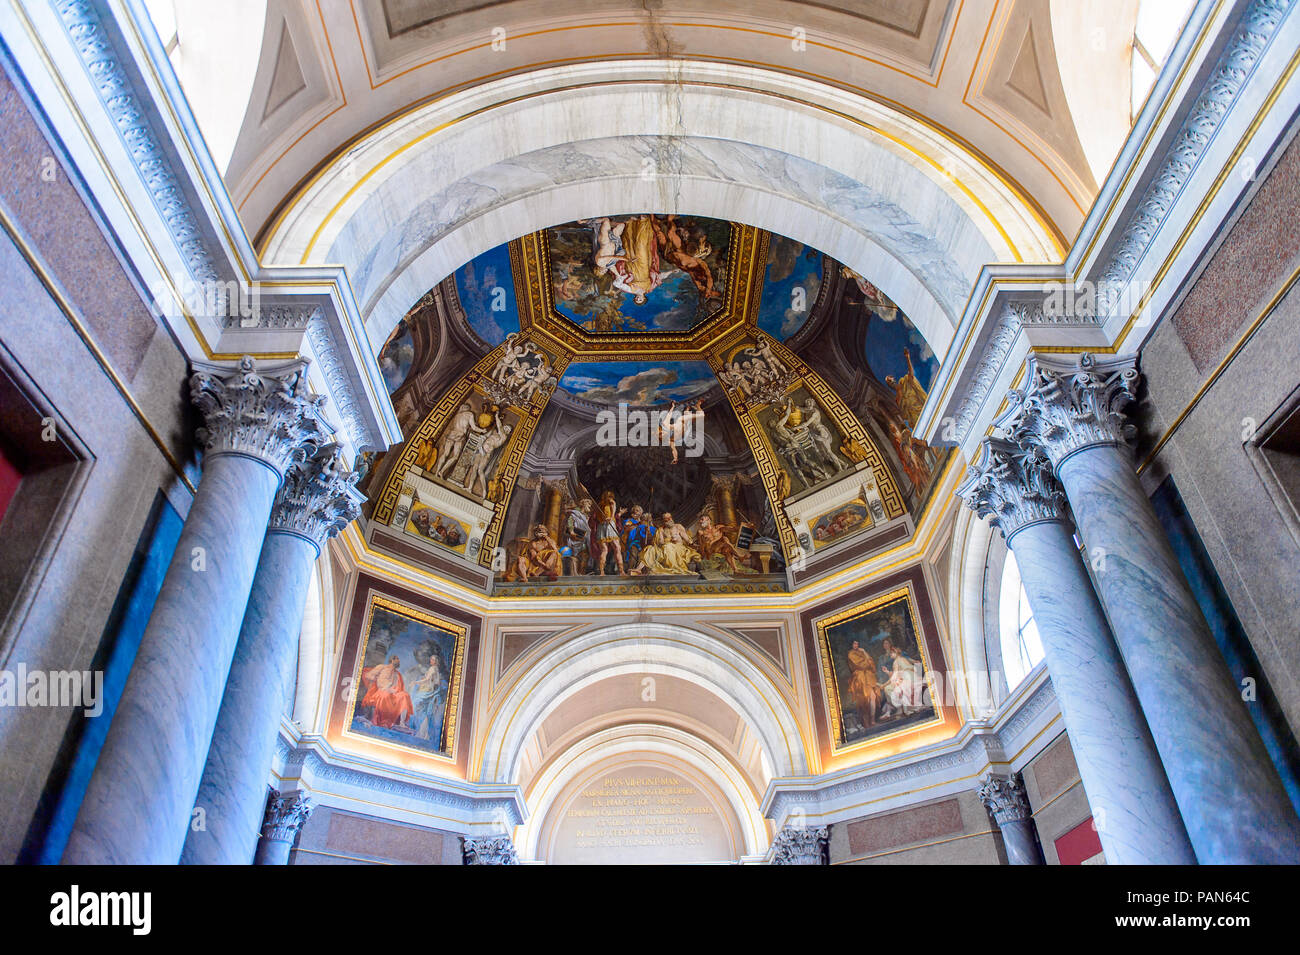 VATICAN, VATICAN CITY - MAY 7, 2016: Frescoes at the ceiling at the Vatican Museum. It was established in 1506 - Stock Image